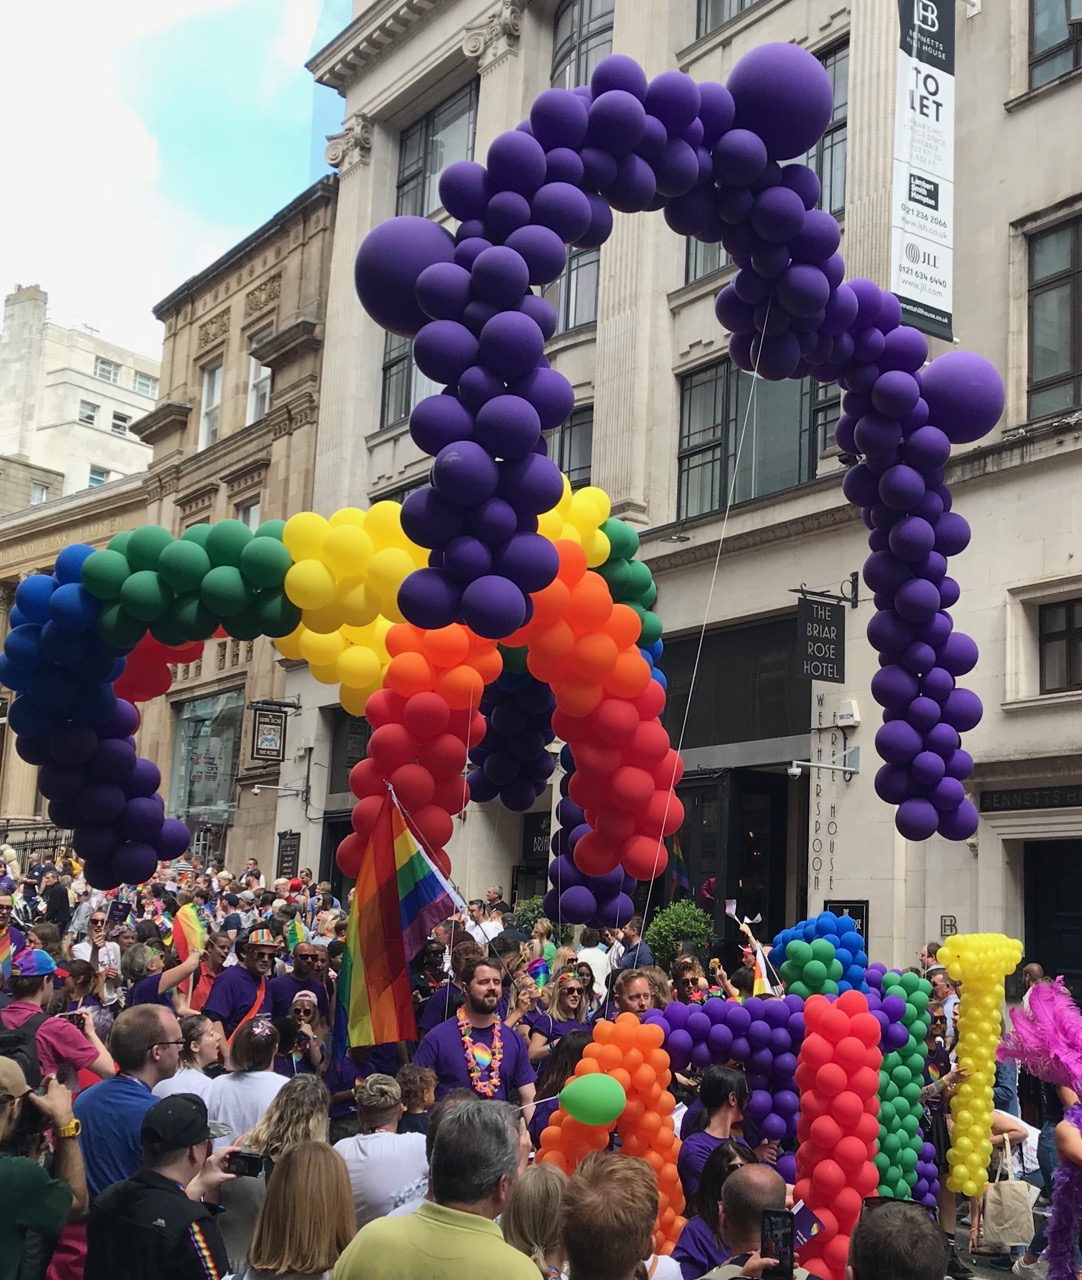 Out In Brum - Birmingham Pride 2019 - 110 - NASUWT Balloons, I think